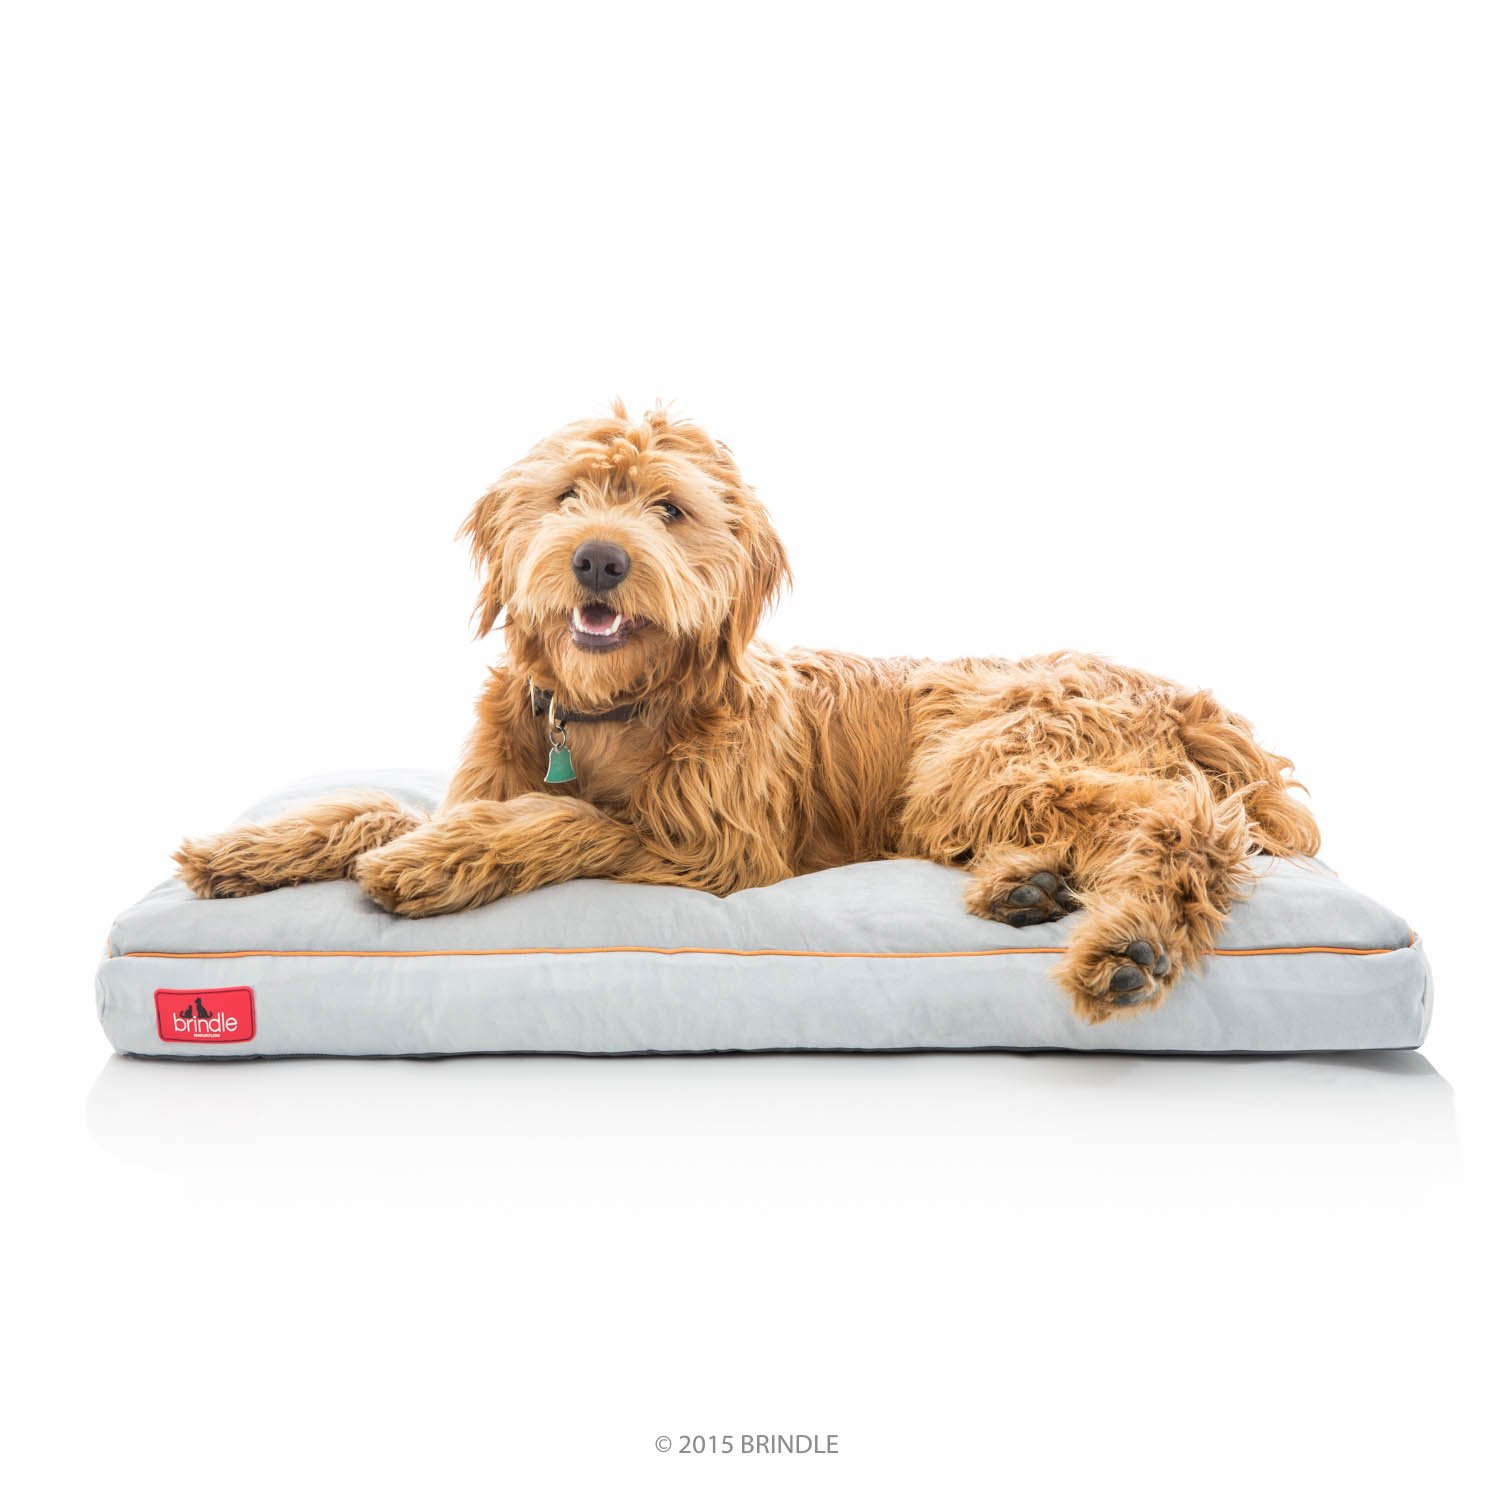 Brindle Soft Shredded Memory Foam Dog Bed with Removable Washable Cover, 40'' x 26'', Stone by Brindle